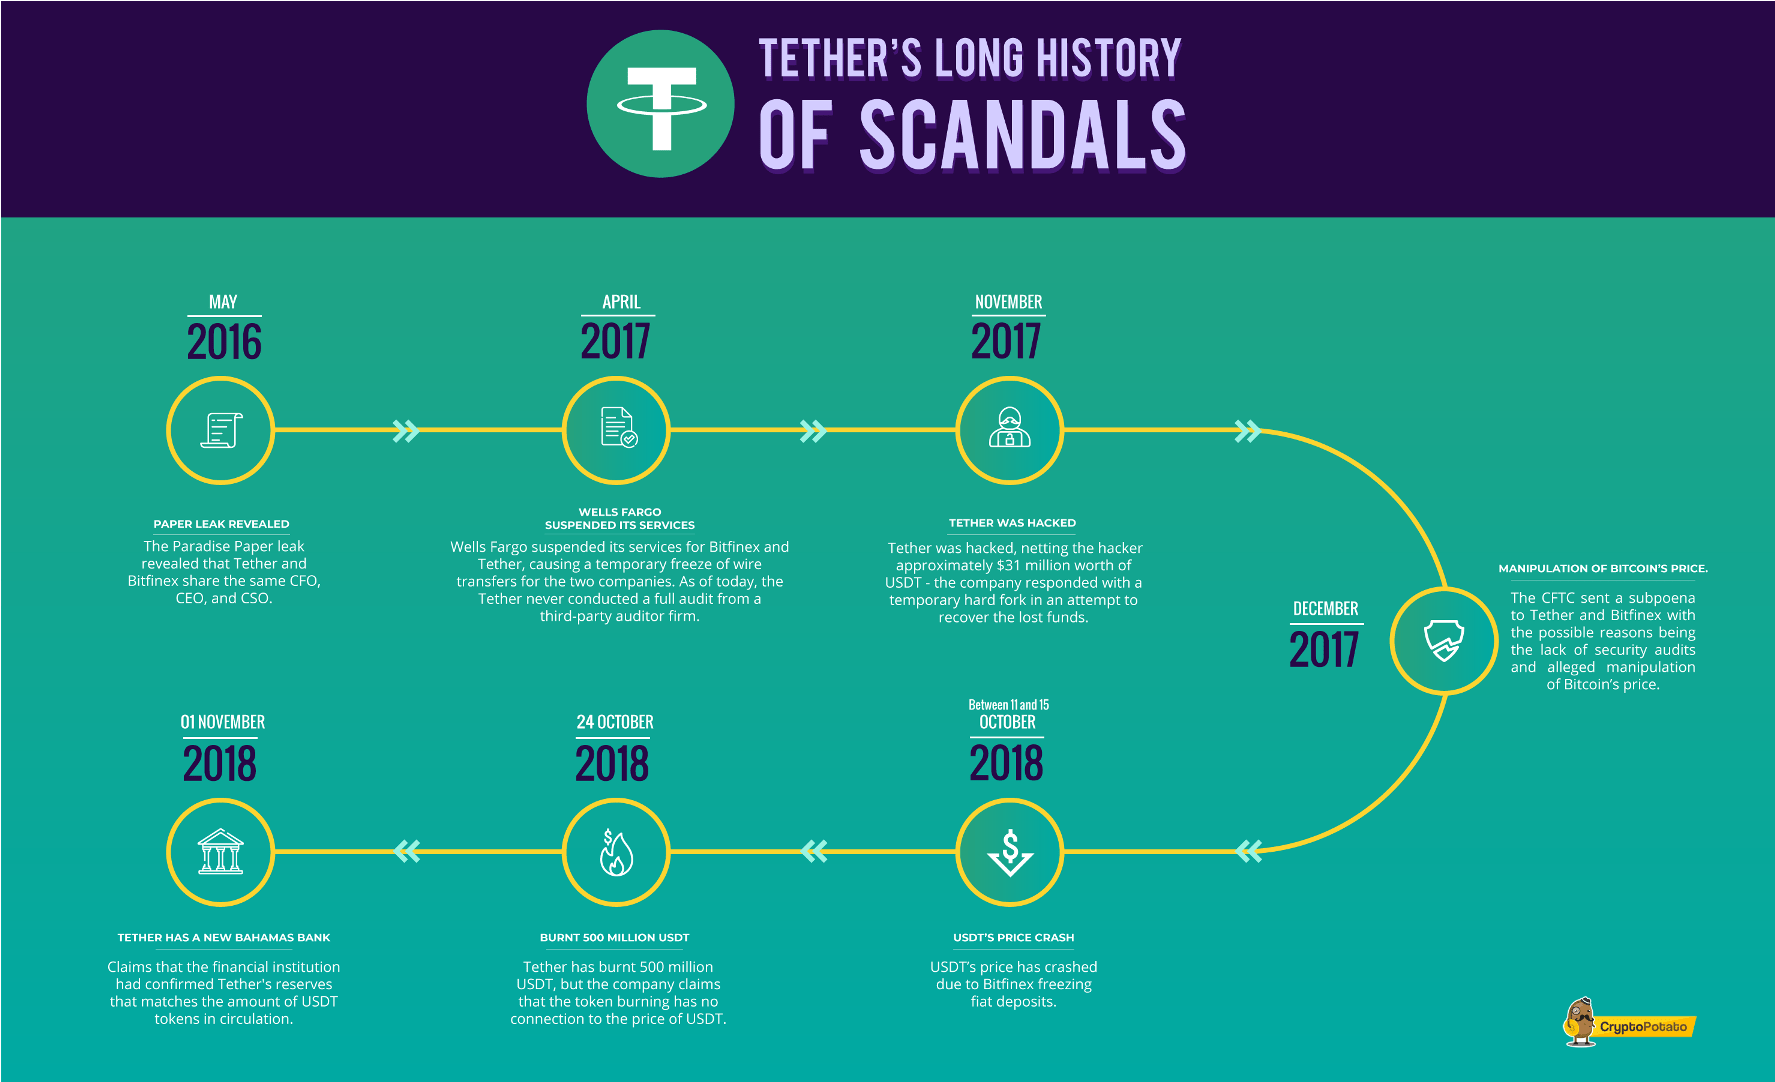 tether scandals historic timeline